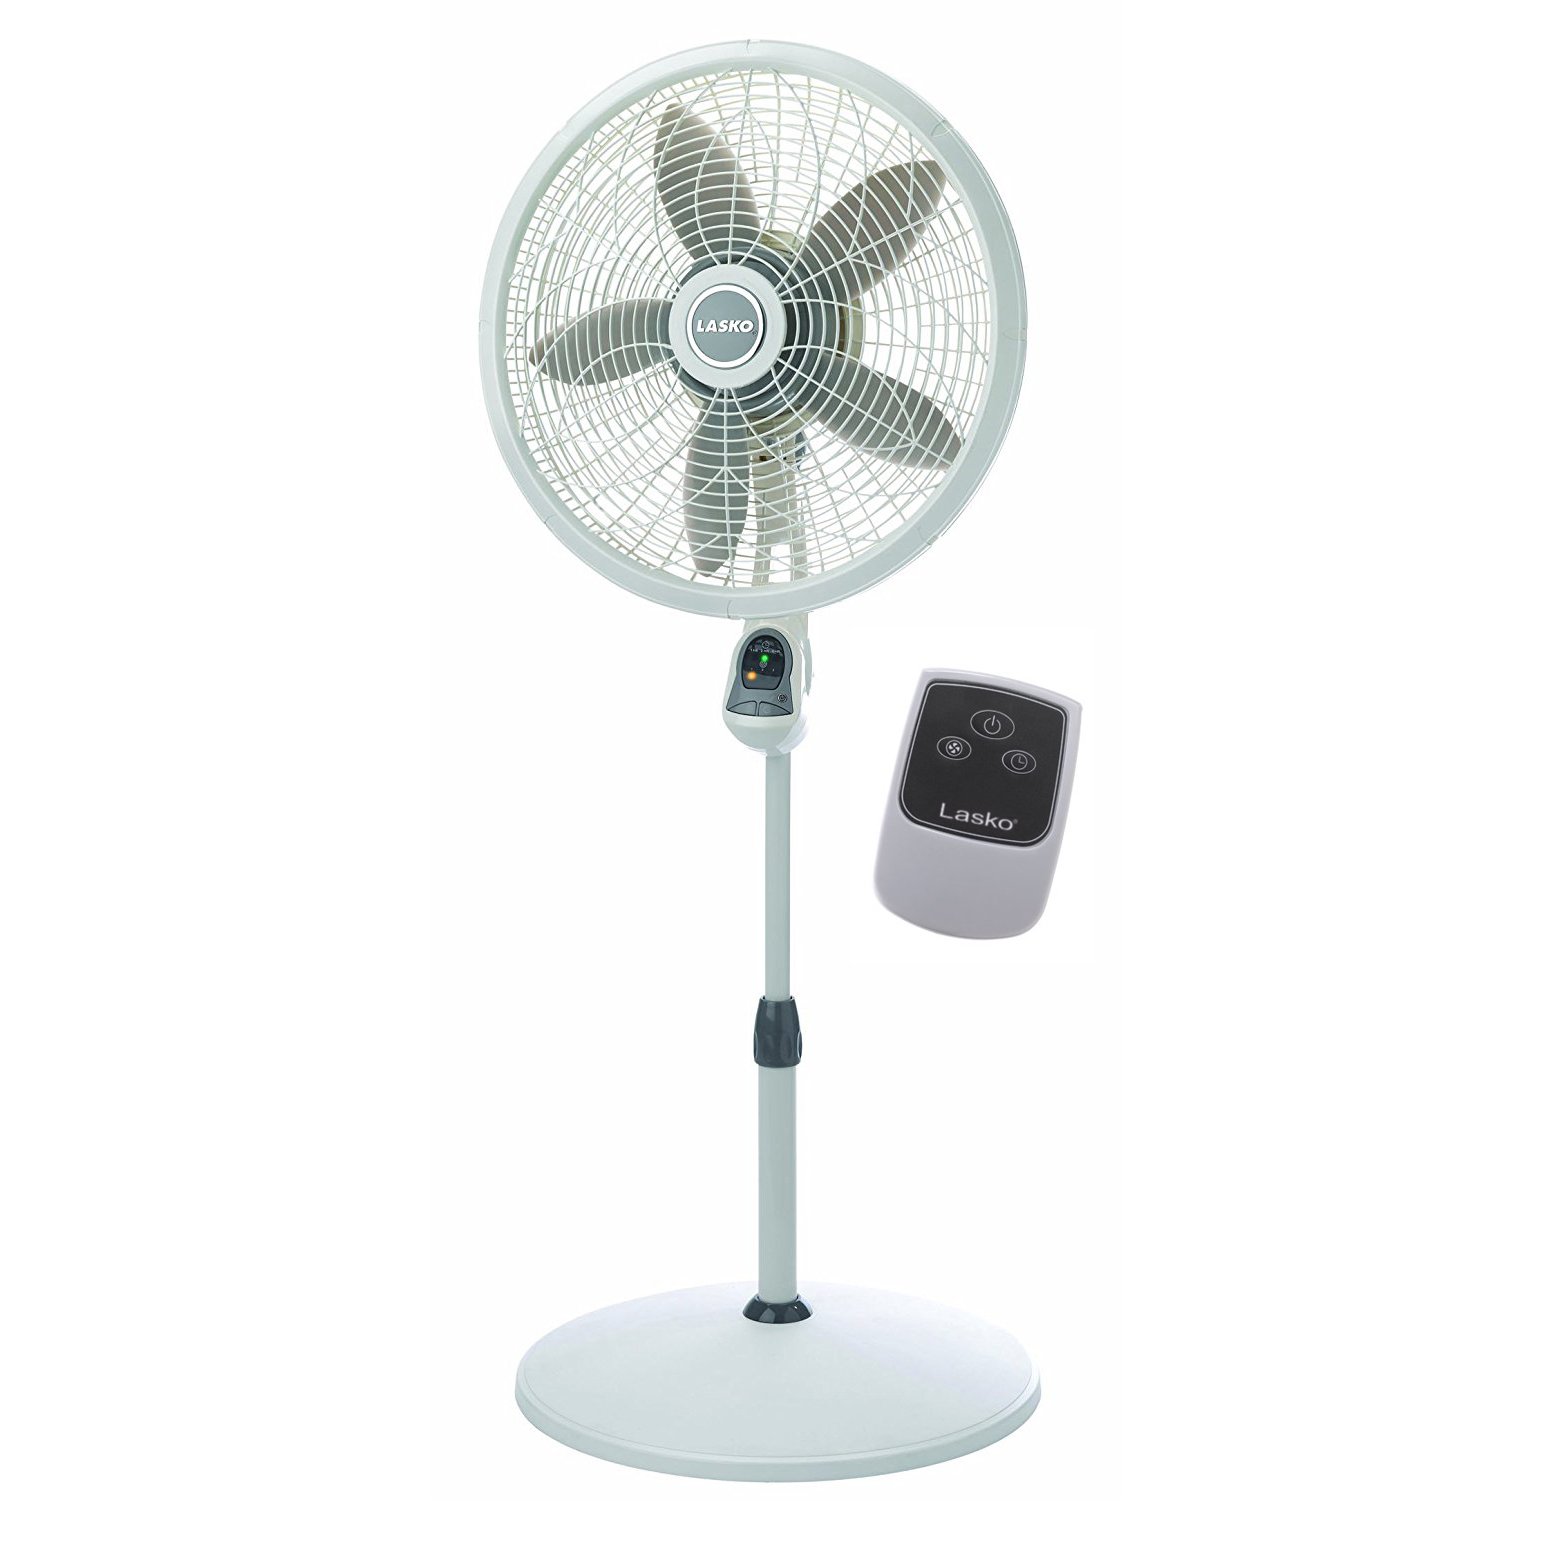 Lasko Oscillating Fan : Lasko inch elegance and performance oscillating